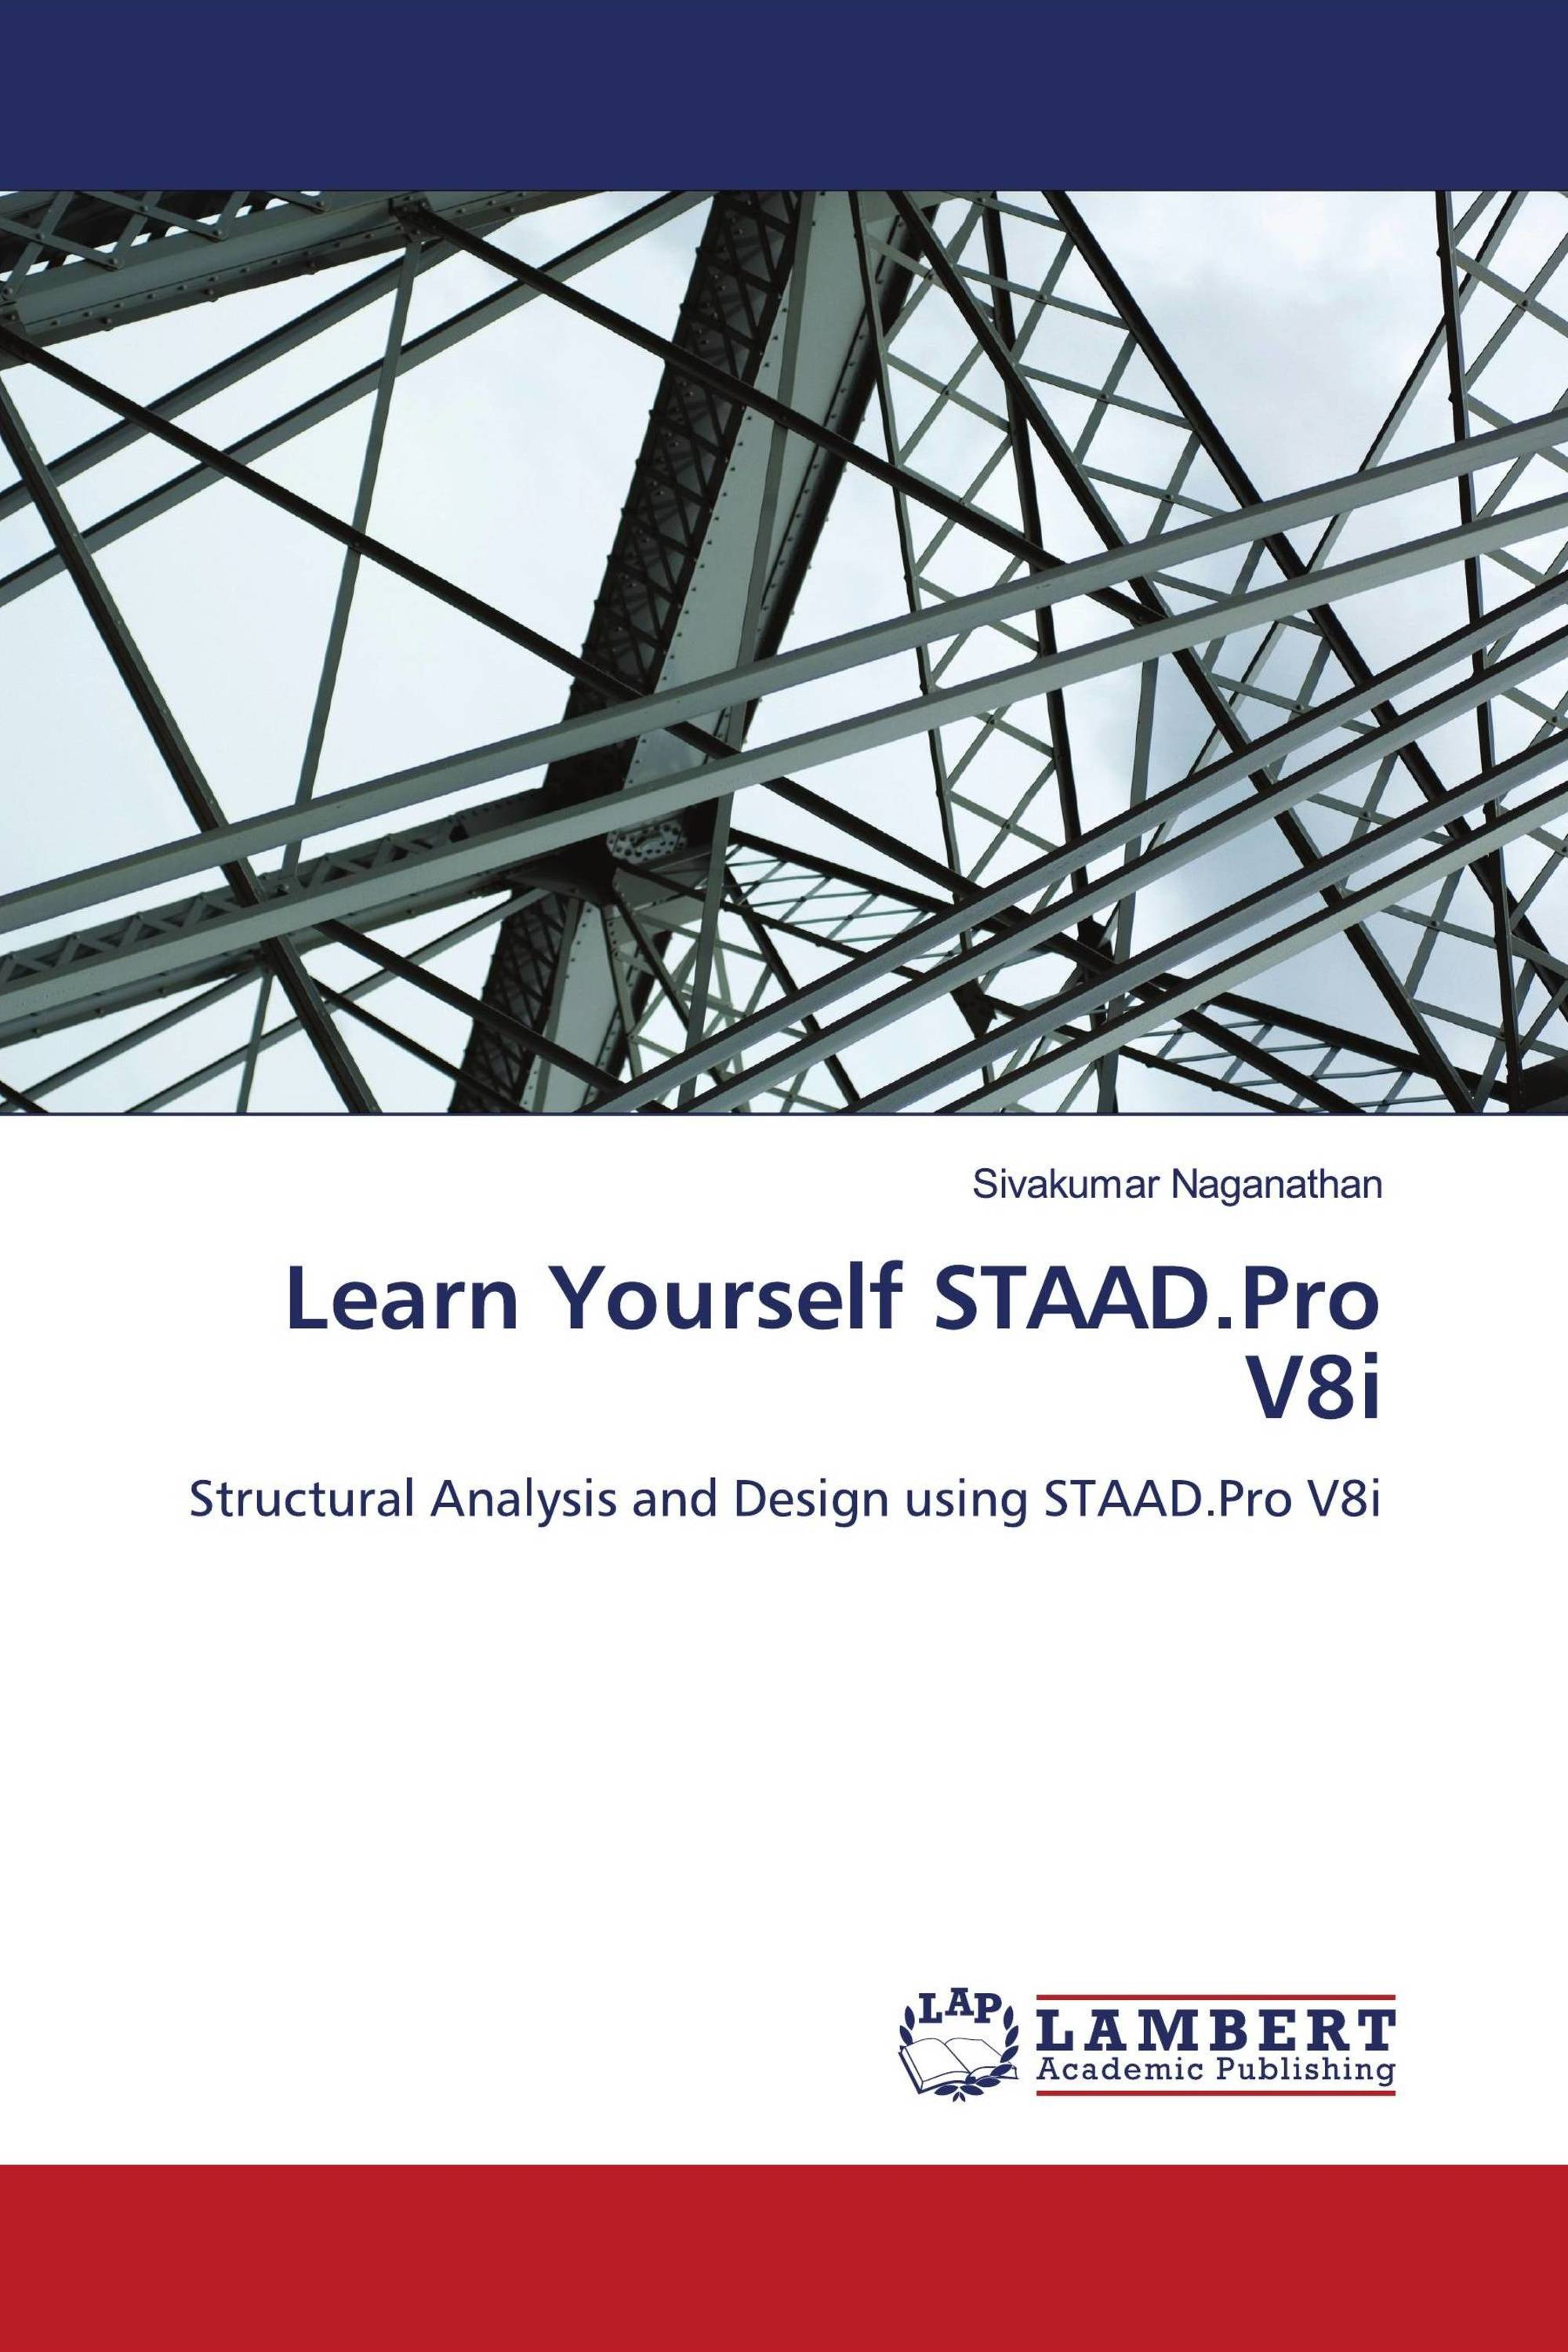 Staad pro tutorial pdf free download.